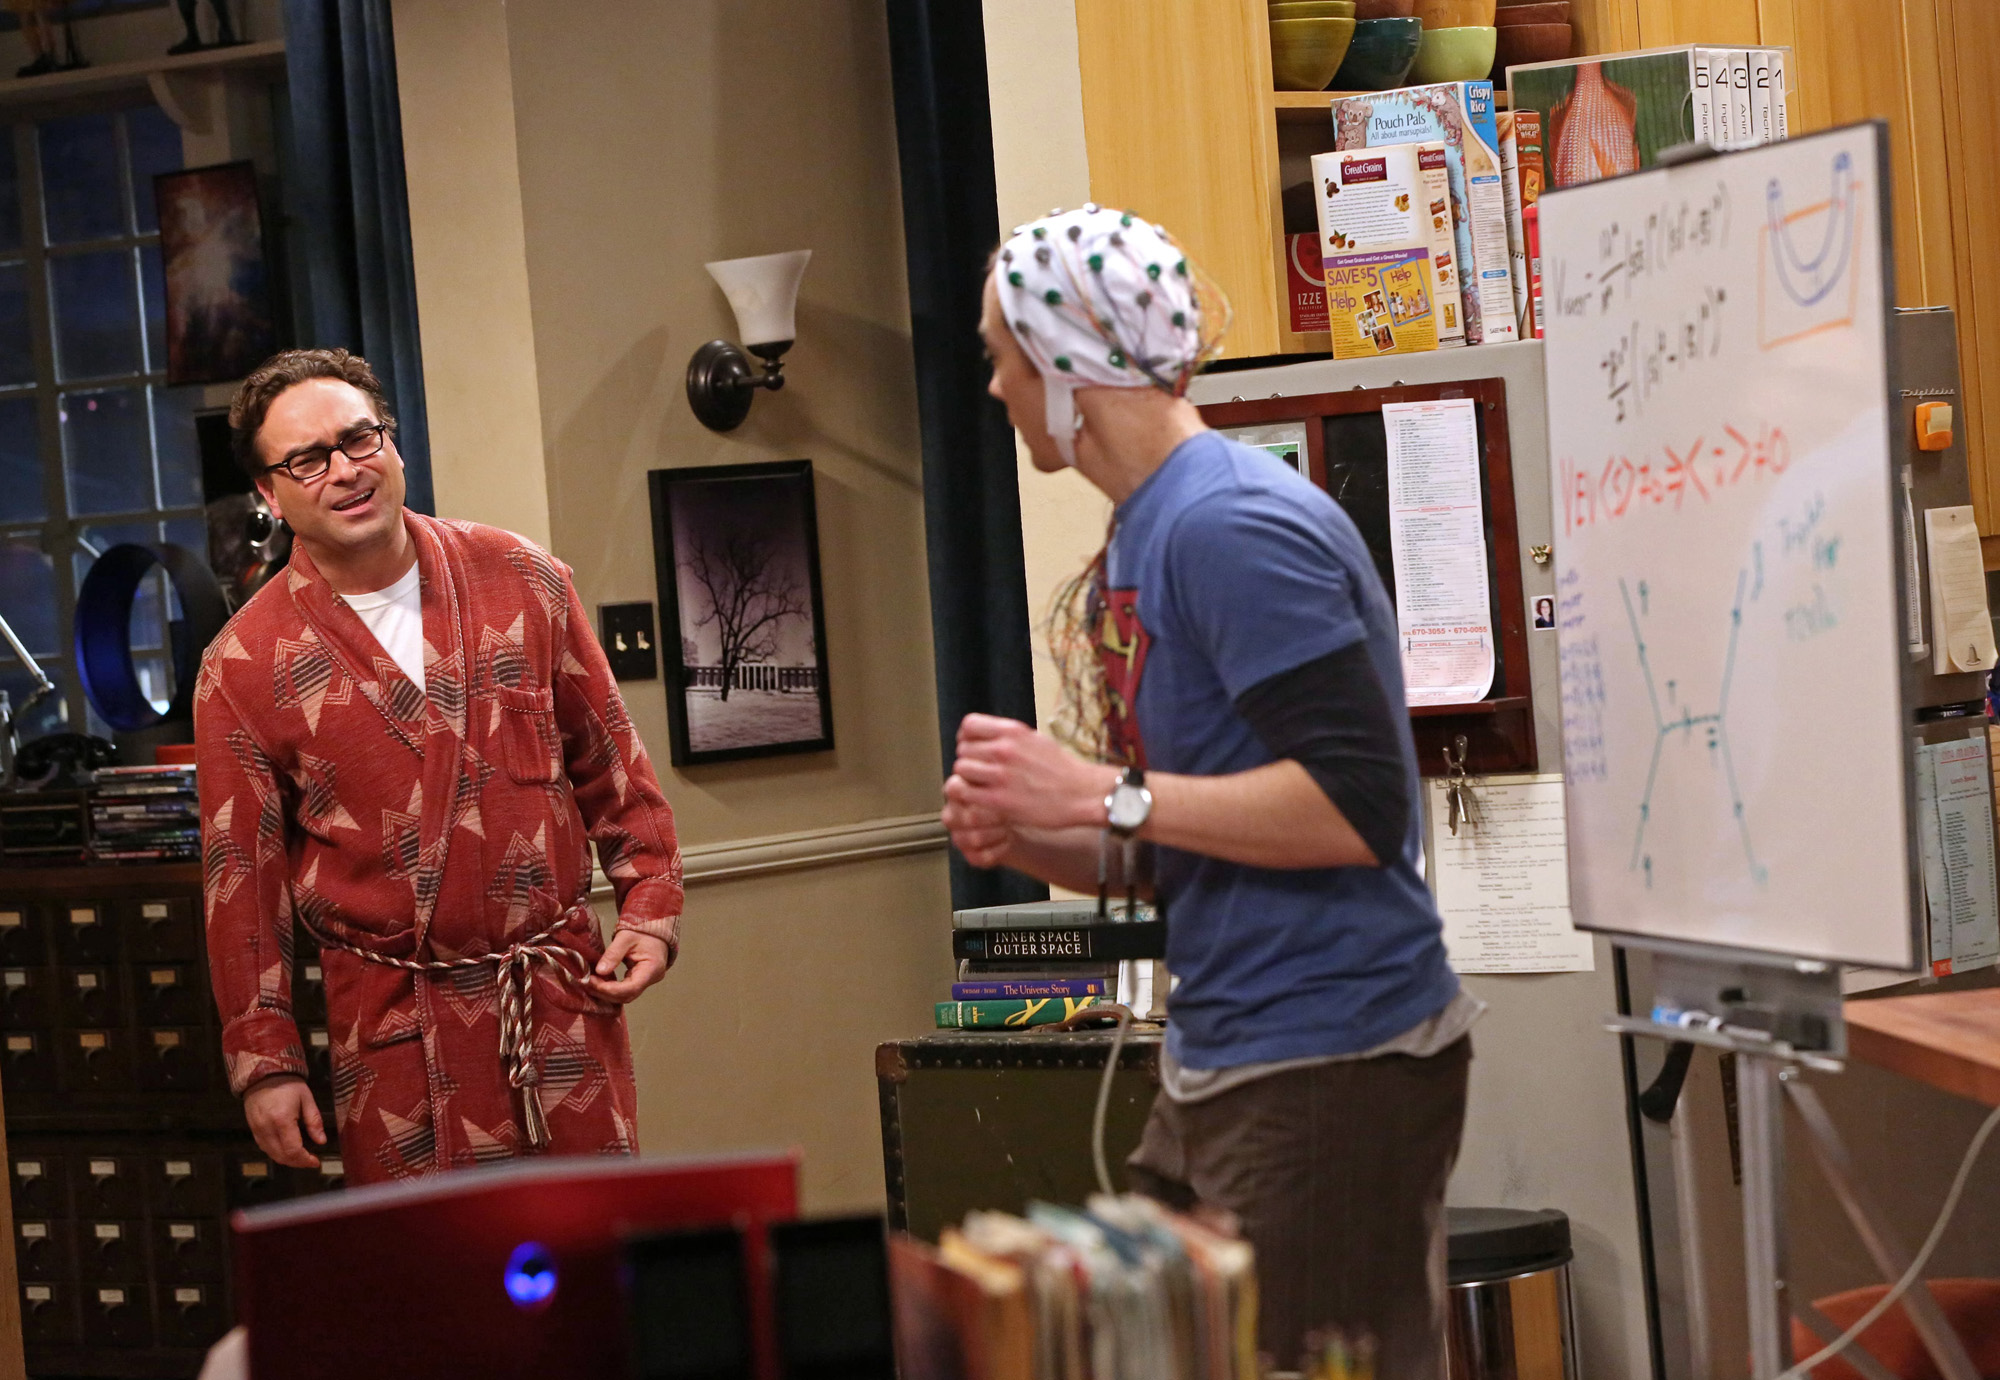 Leonard asks Sheldon what he's up to